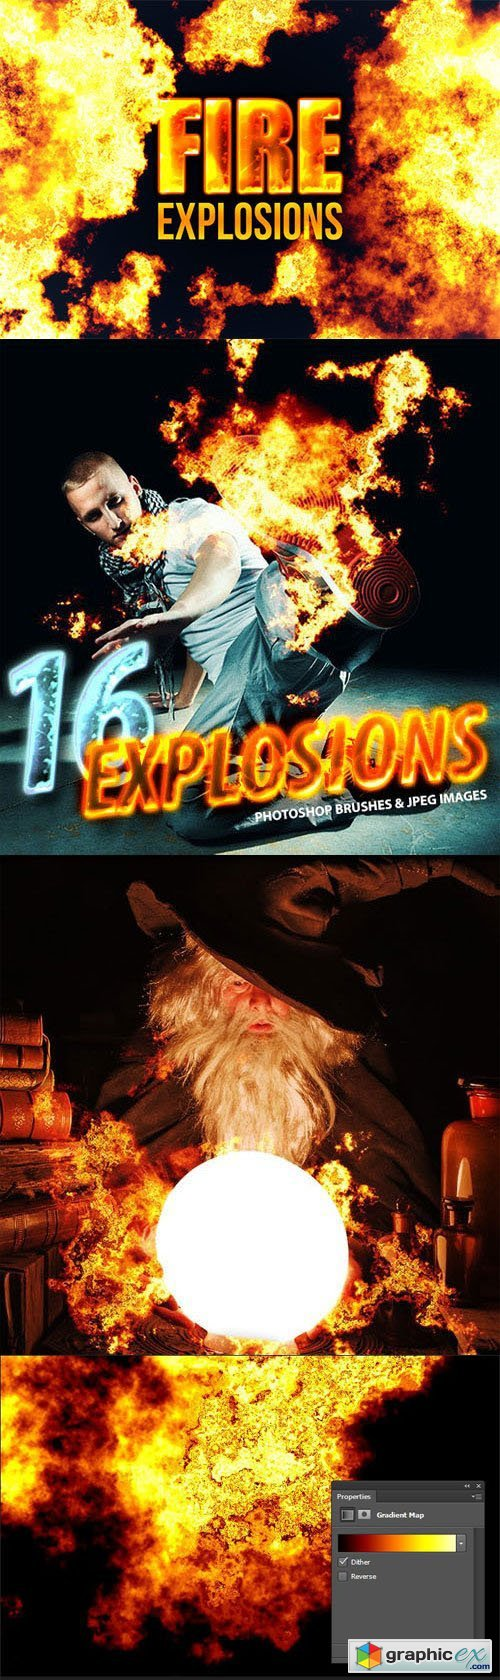 16 Photorealistic Explosion Photoshop Brushes (Re-Up)